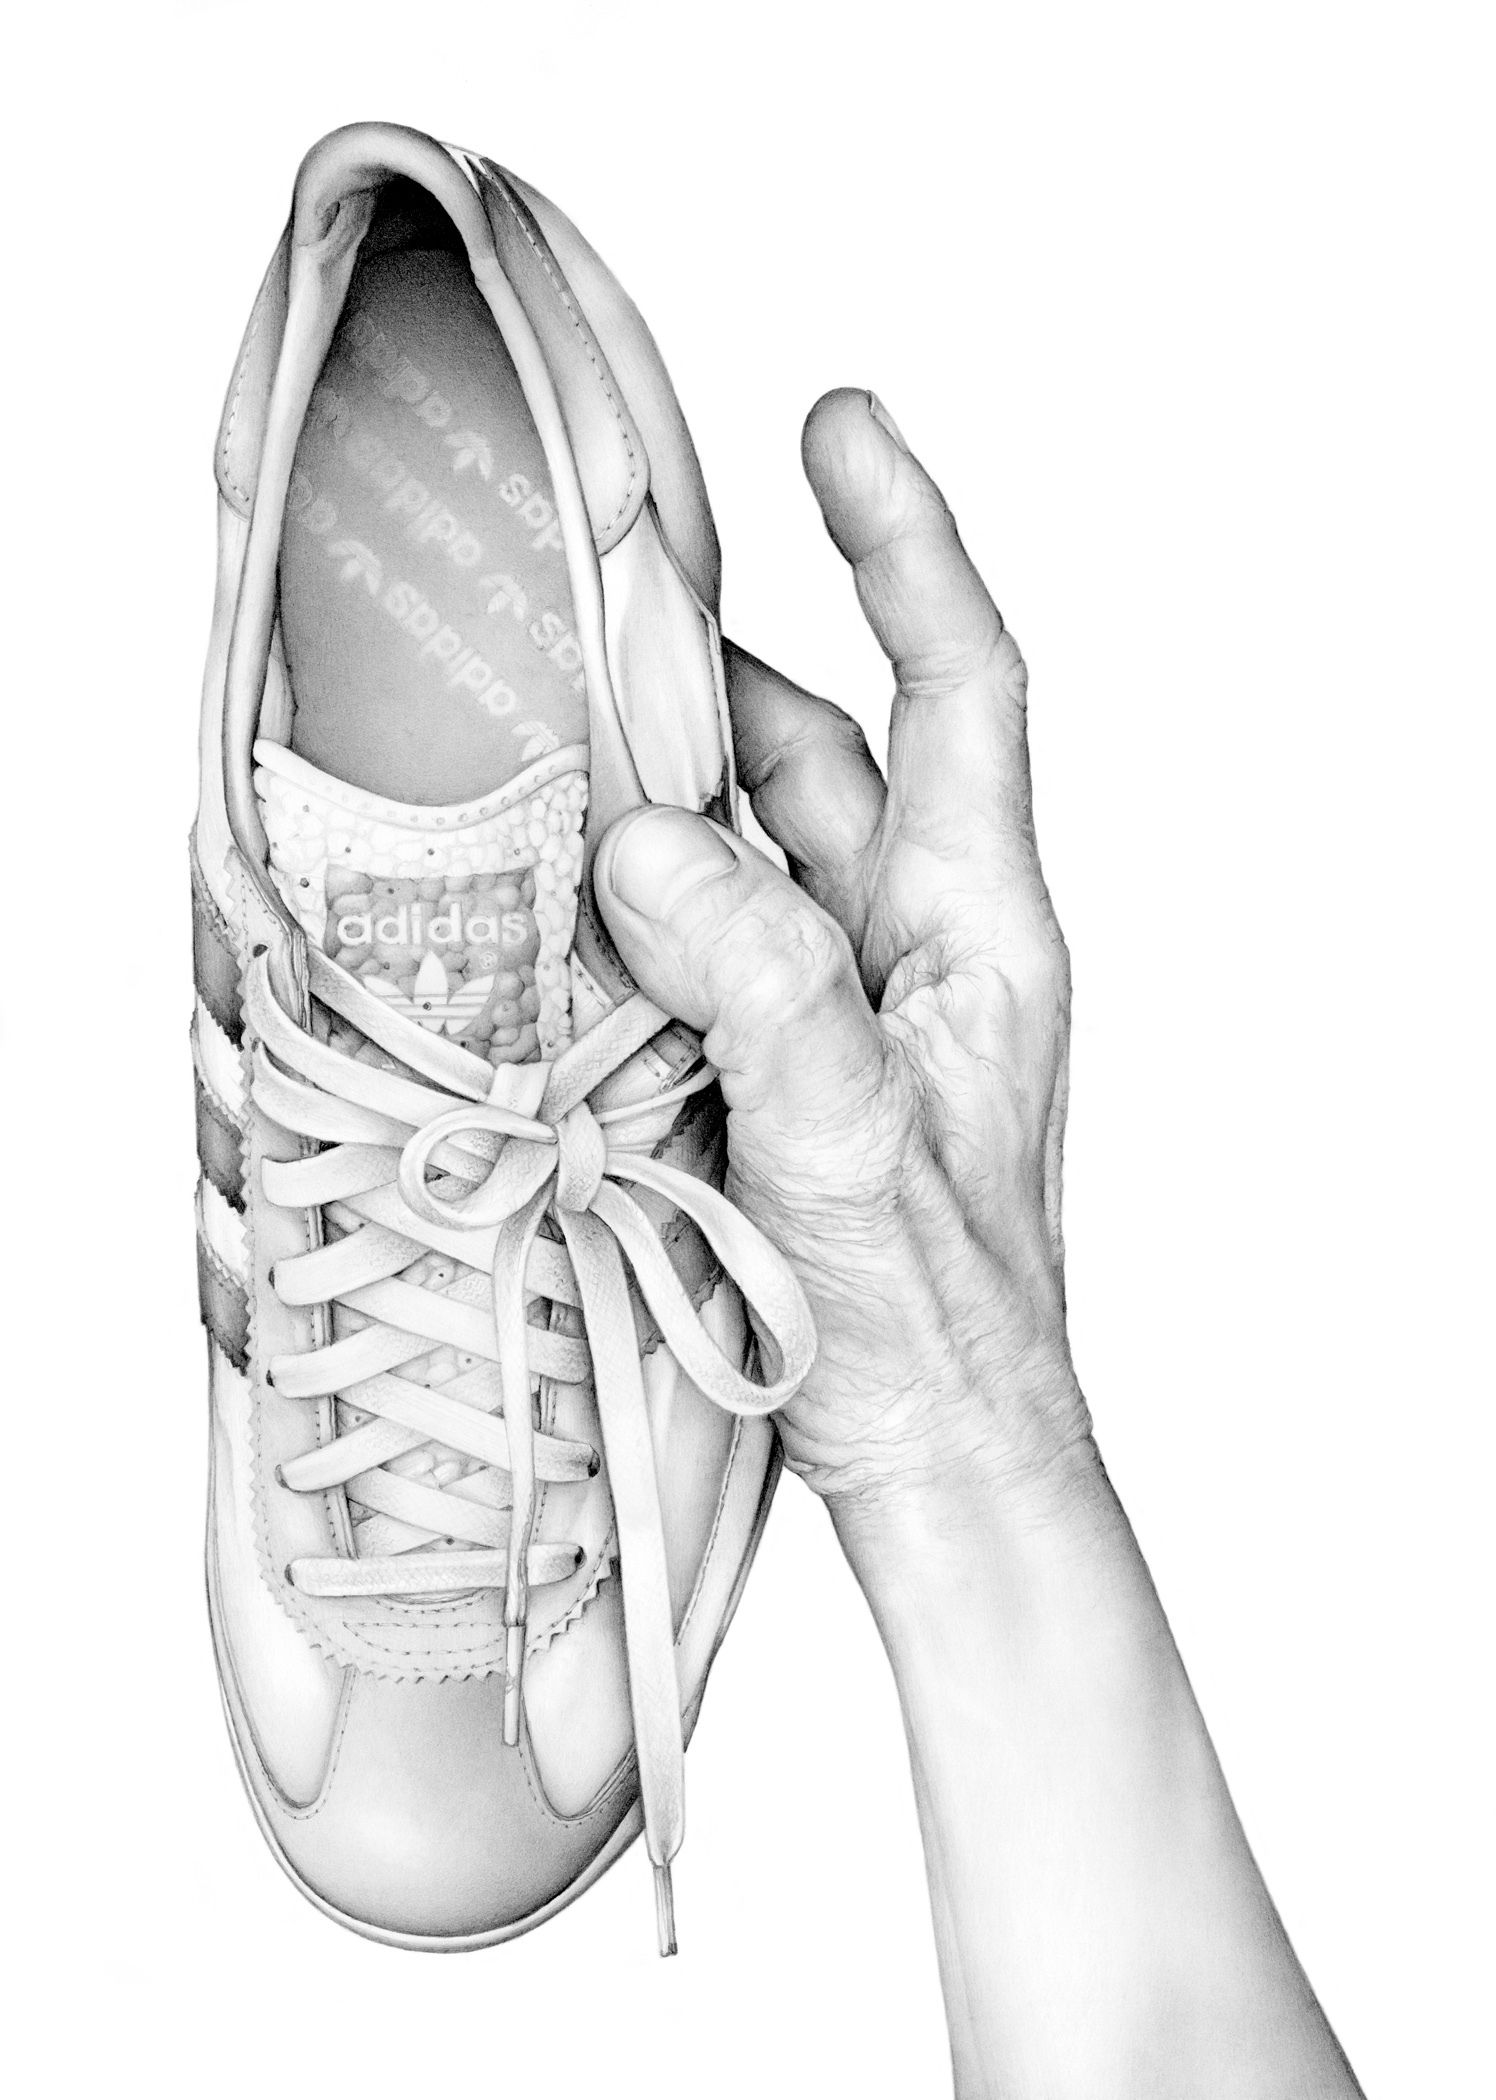 Hand holding adidas trainer cath riley debut art